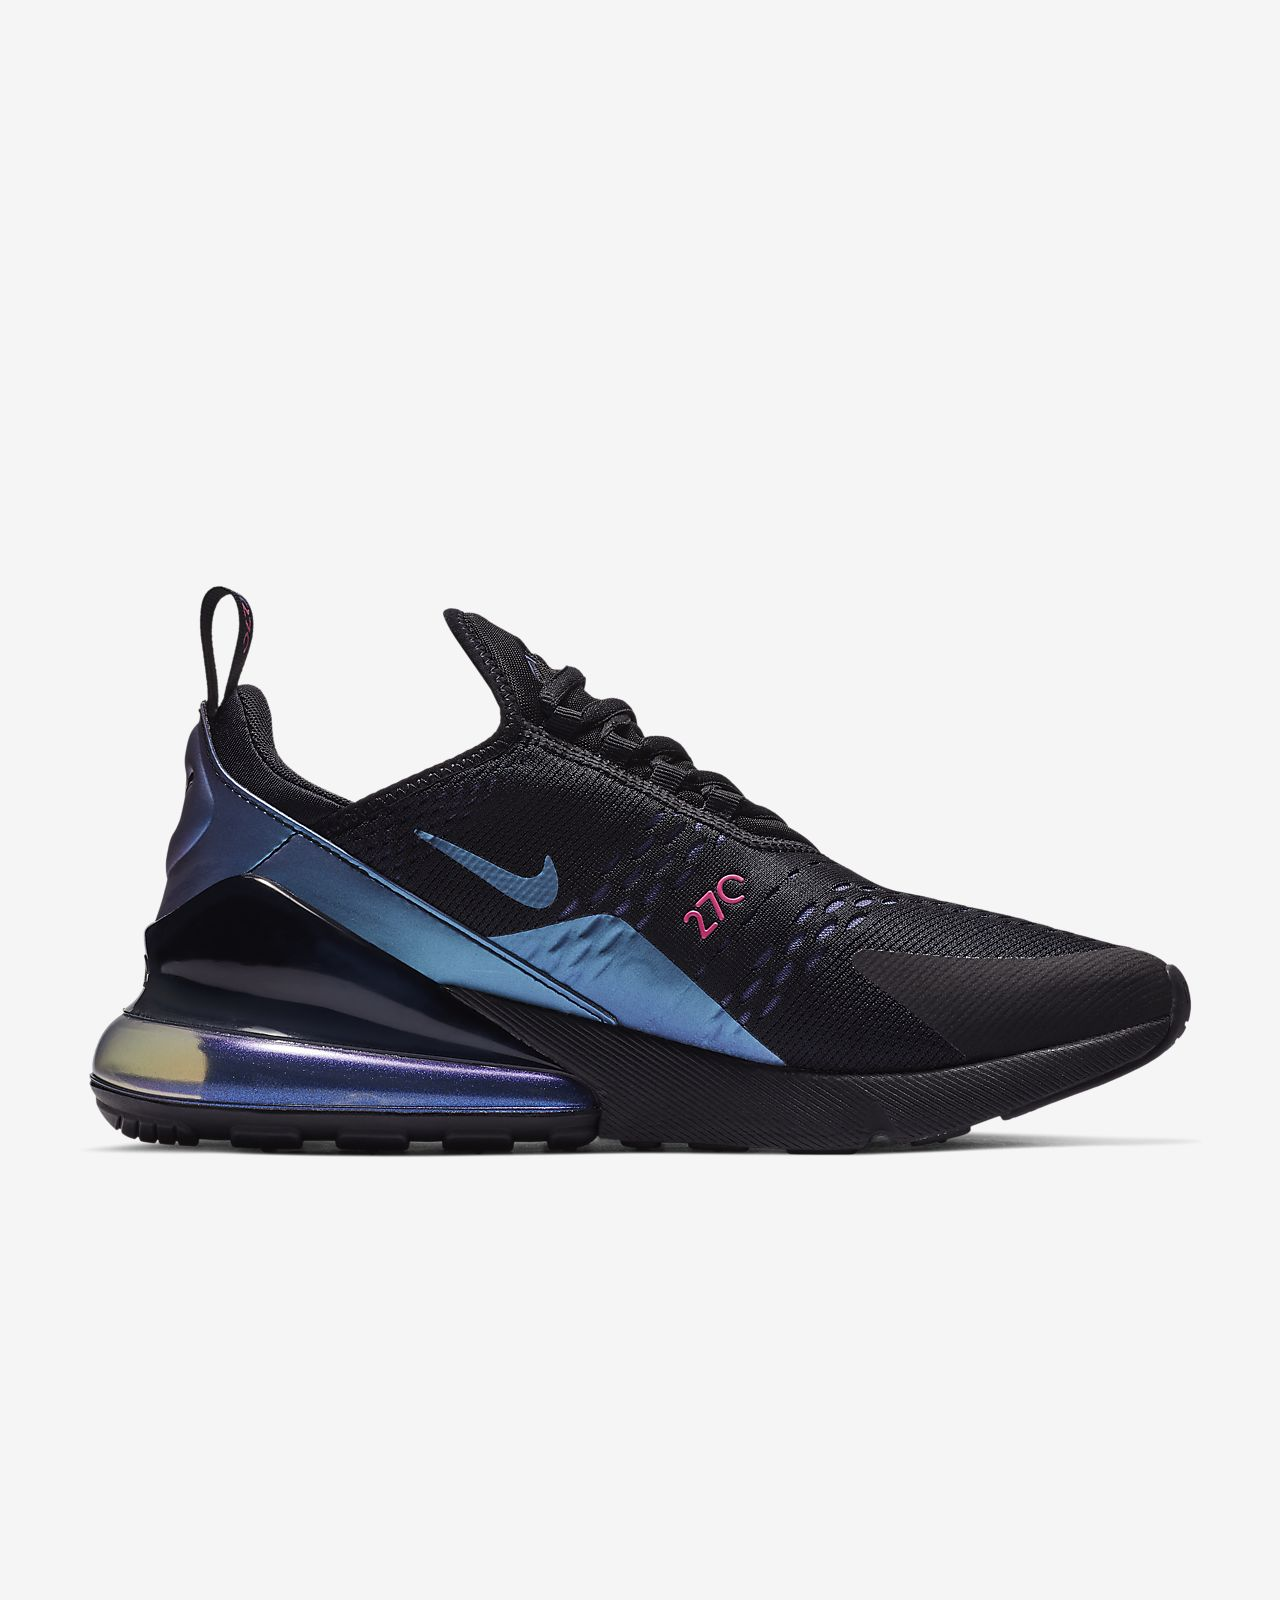 reputable site 29e9b 0df7e ... Nike Air Max 270 Mens Shoe